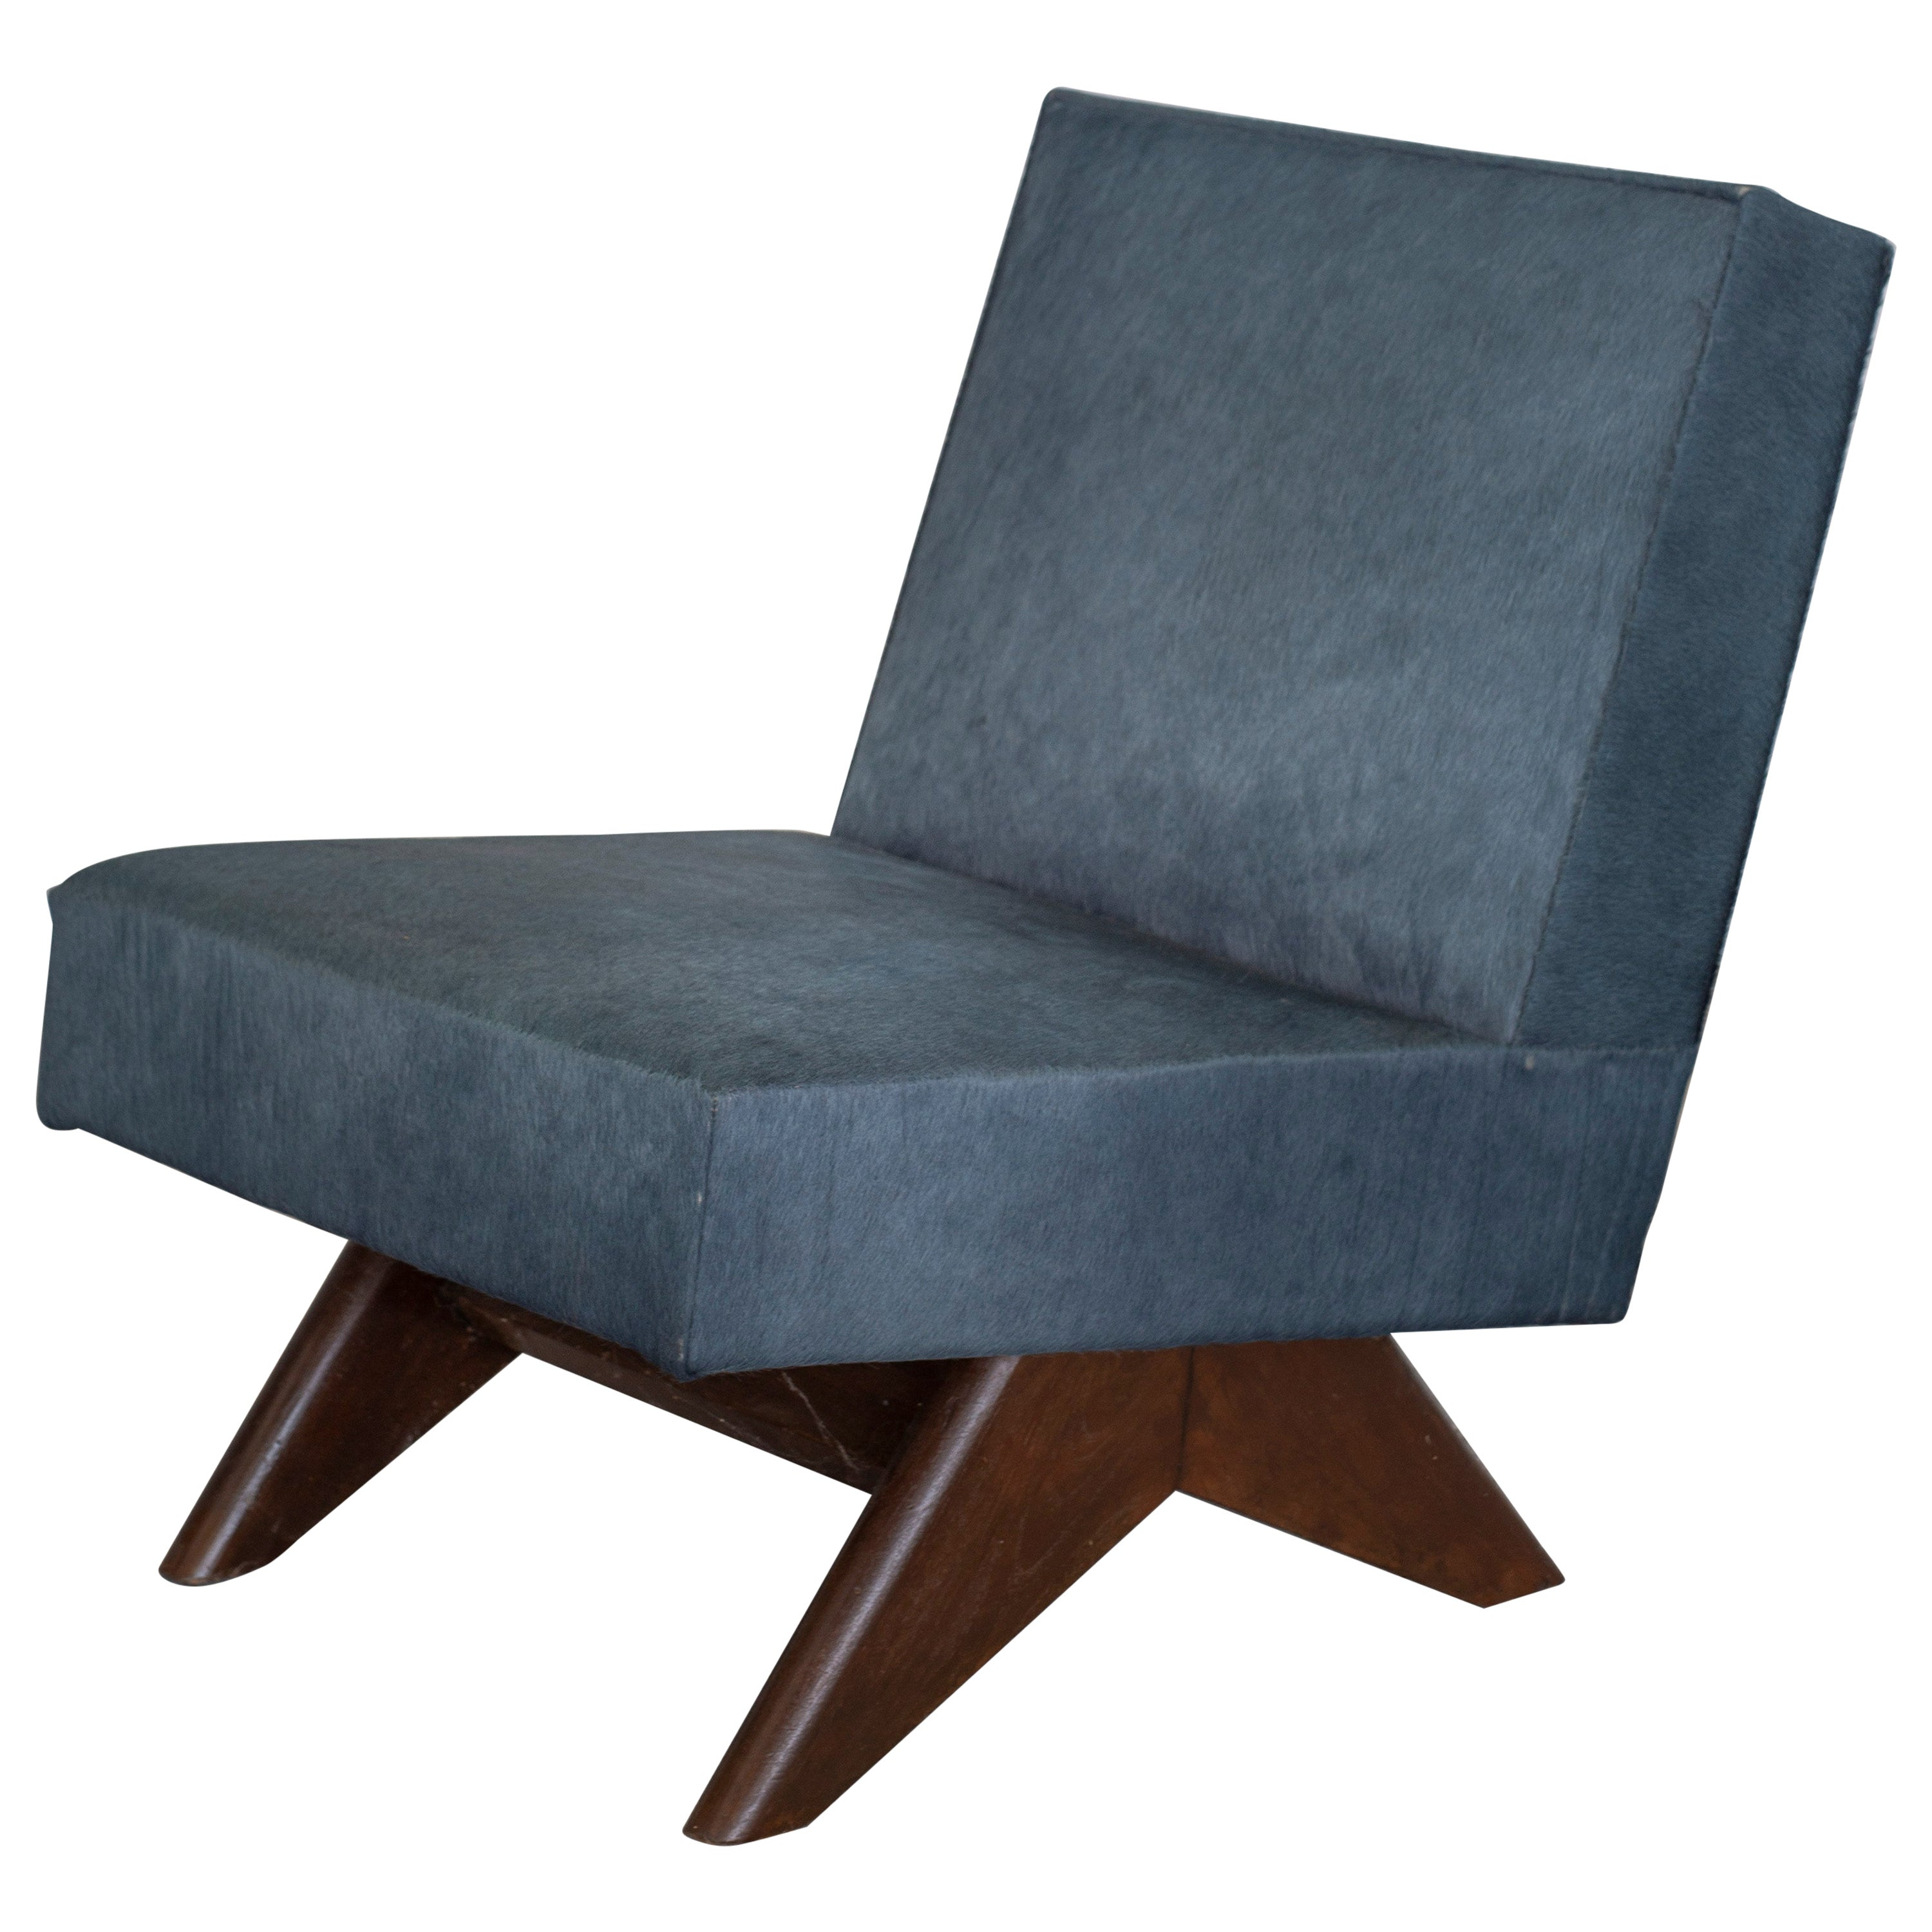 Pierre Jeanneret Sofa Chair Authentic Mid-Century Modern Chandigarh PJ-SI-36-A